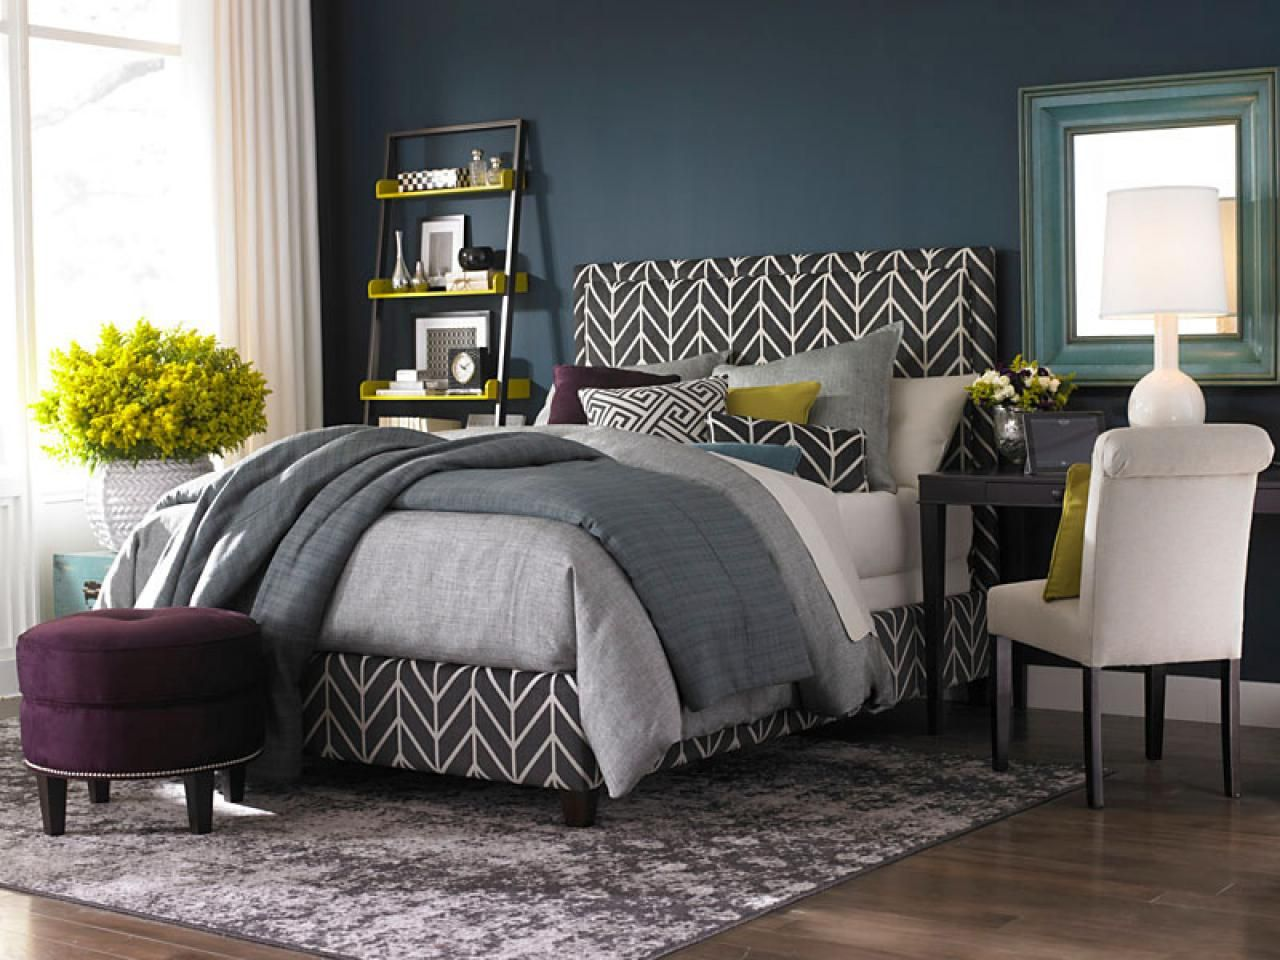 Hgtv Ideas For Small Bedrooms Part - 40: Paint Ideas